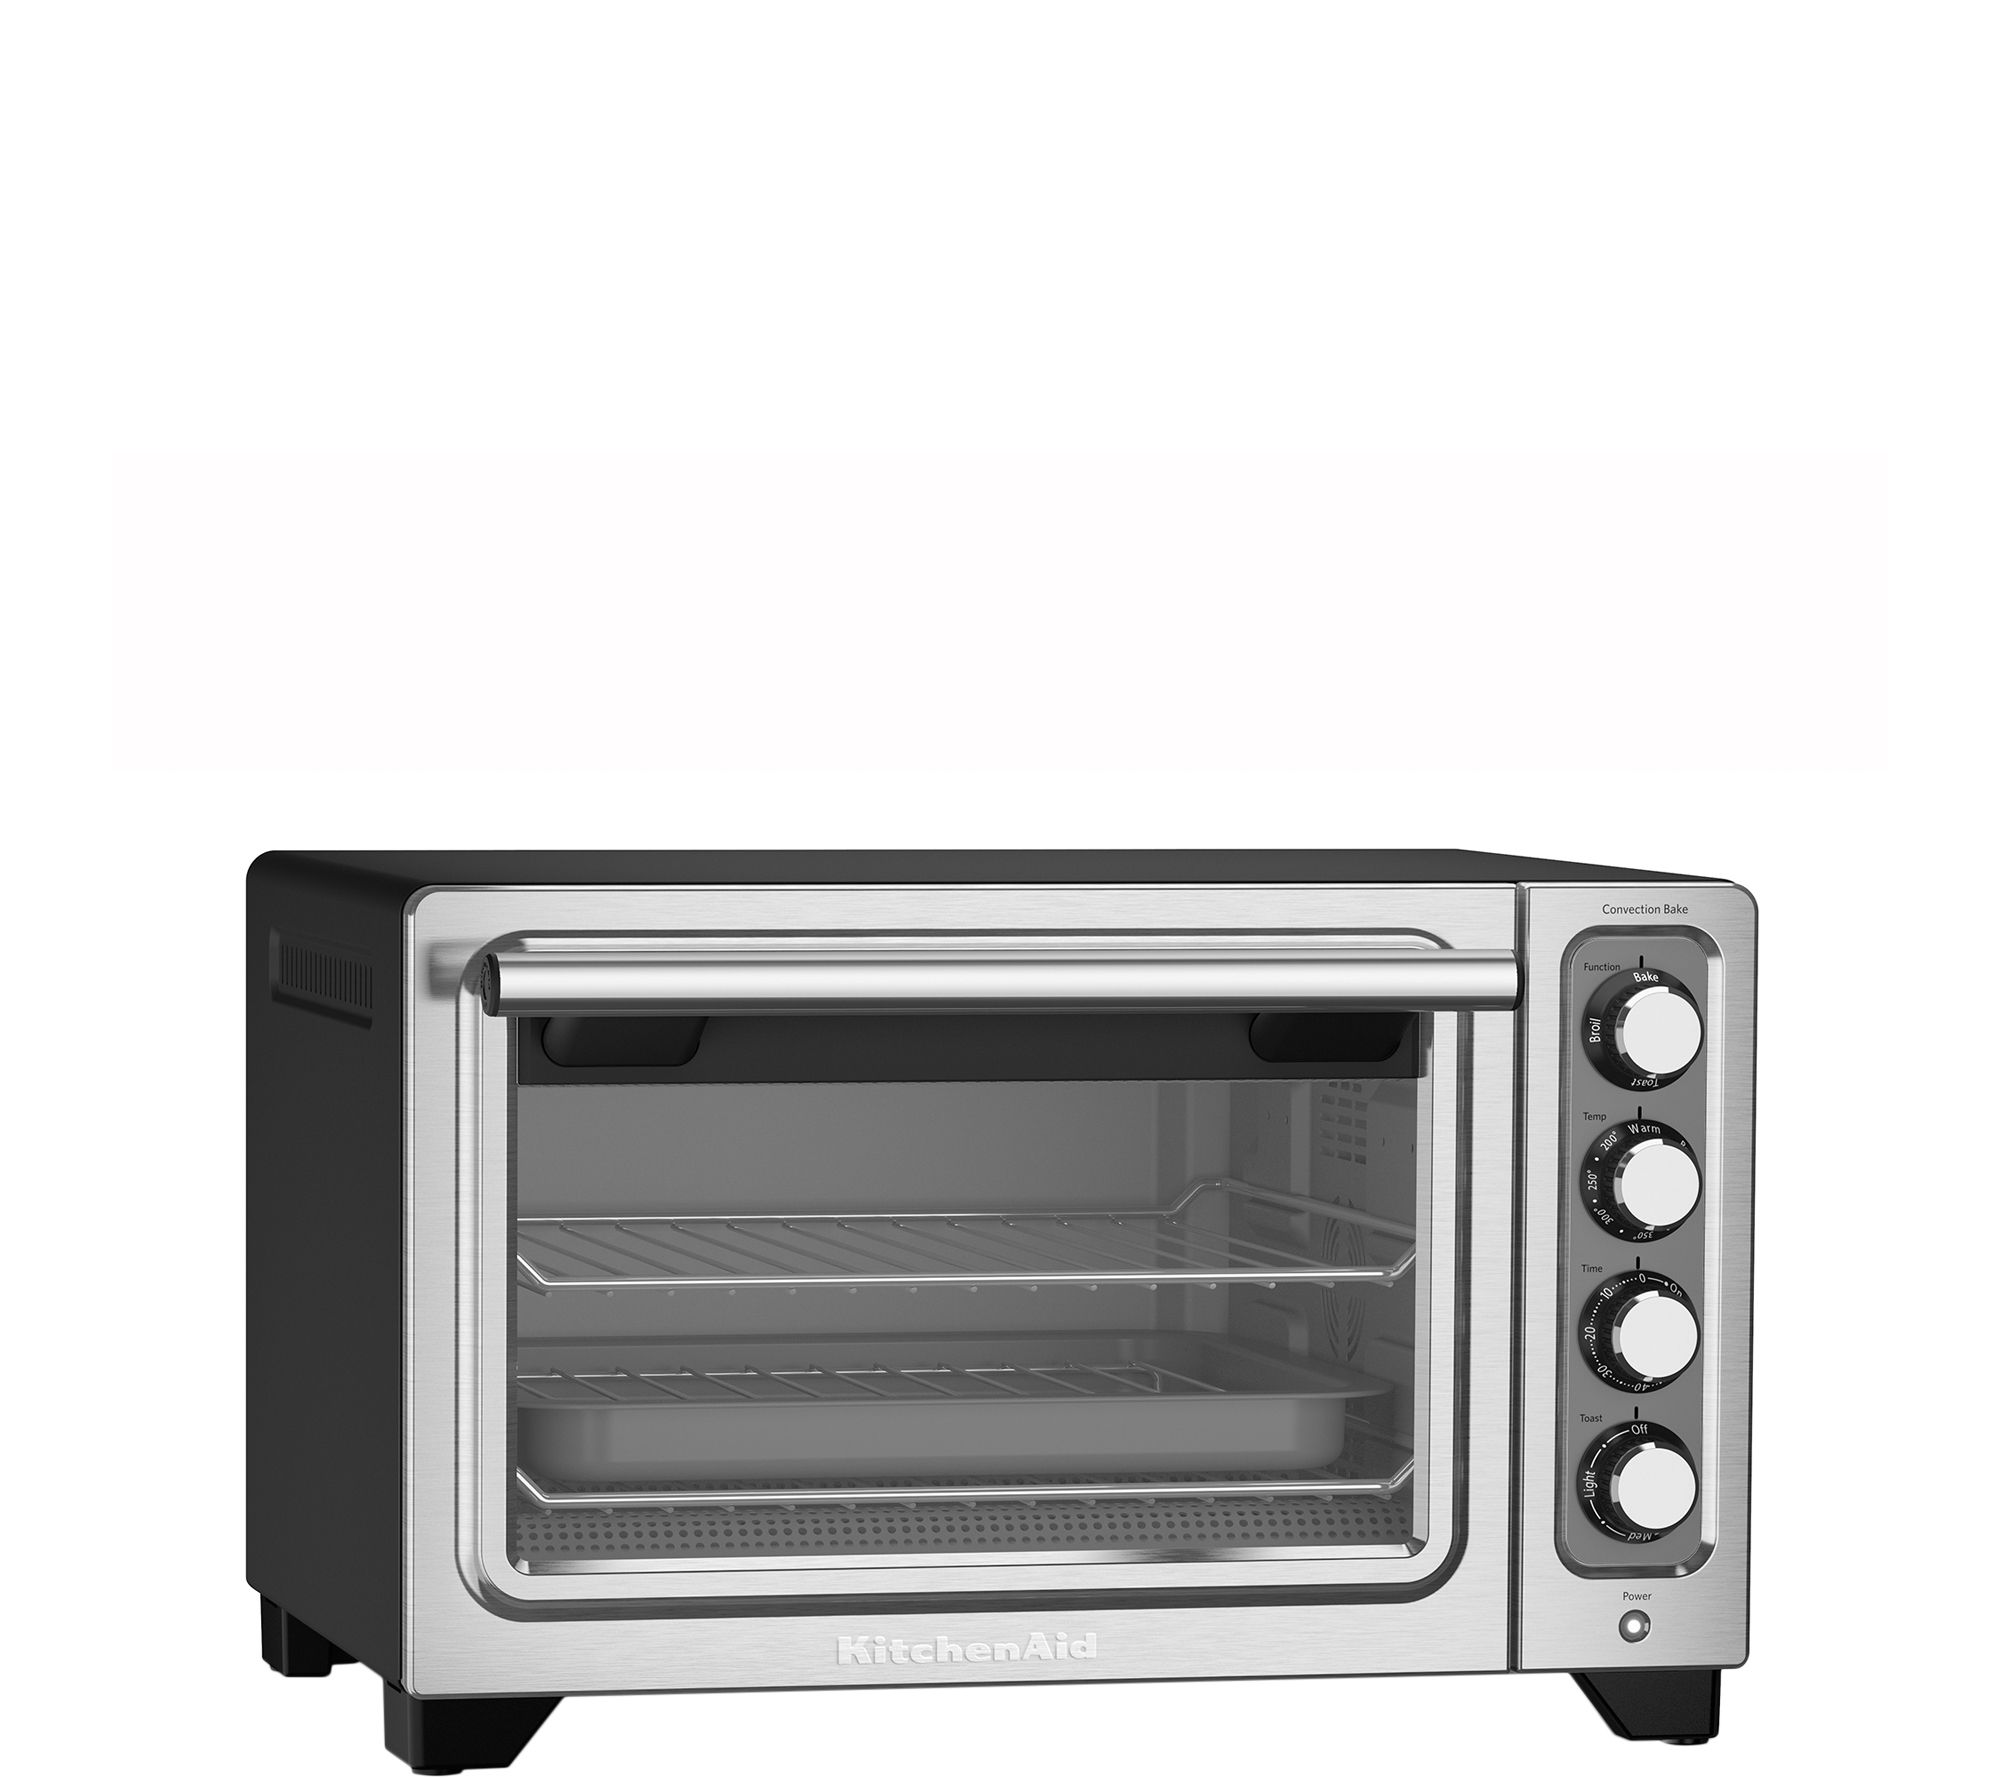 black toaster timer convection slice bread oven grill with and decker to tray watch parts